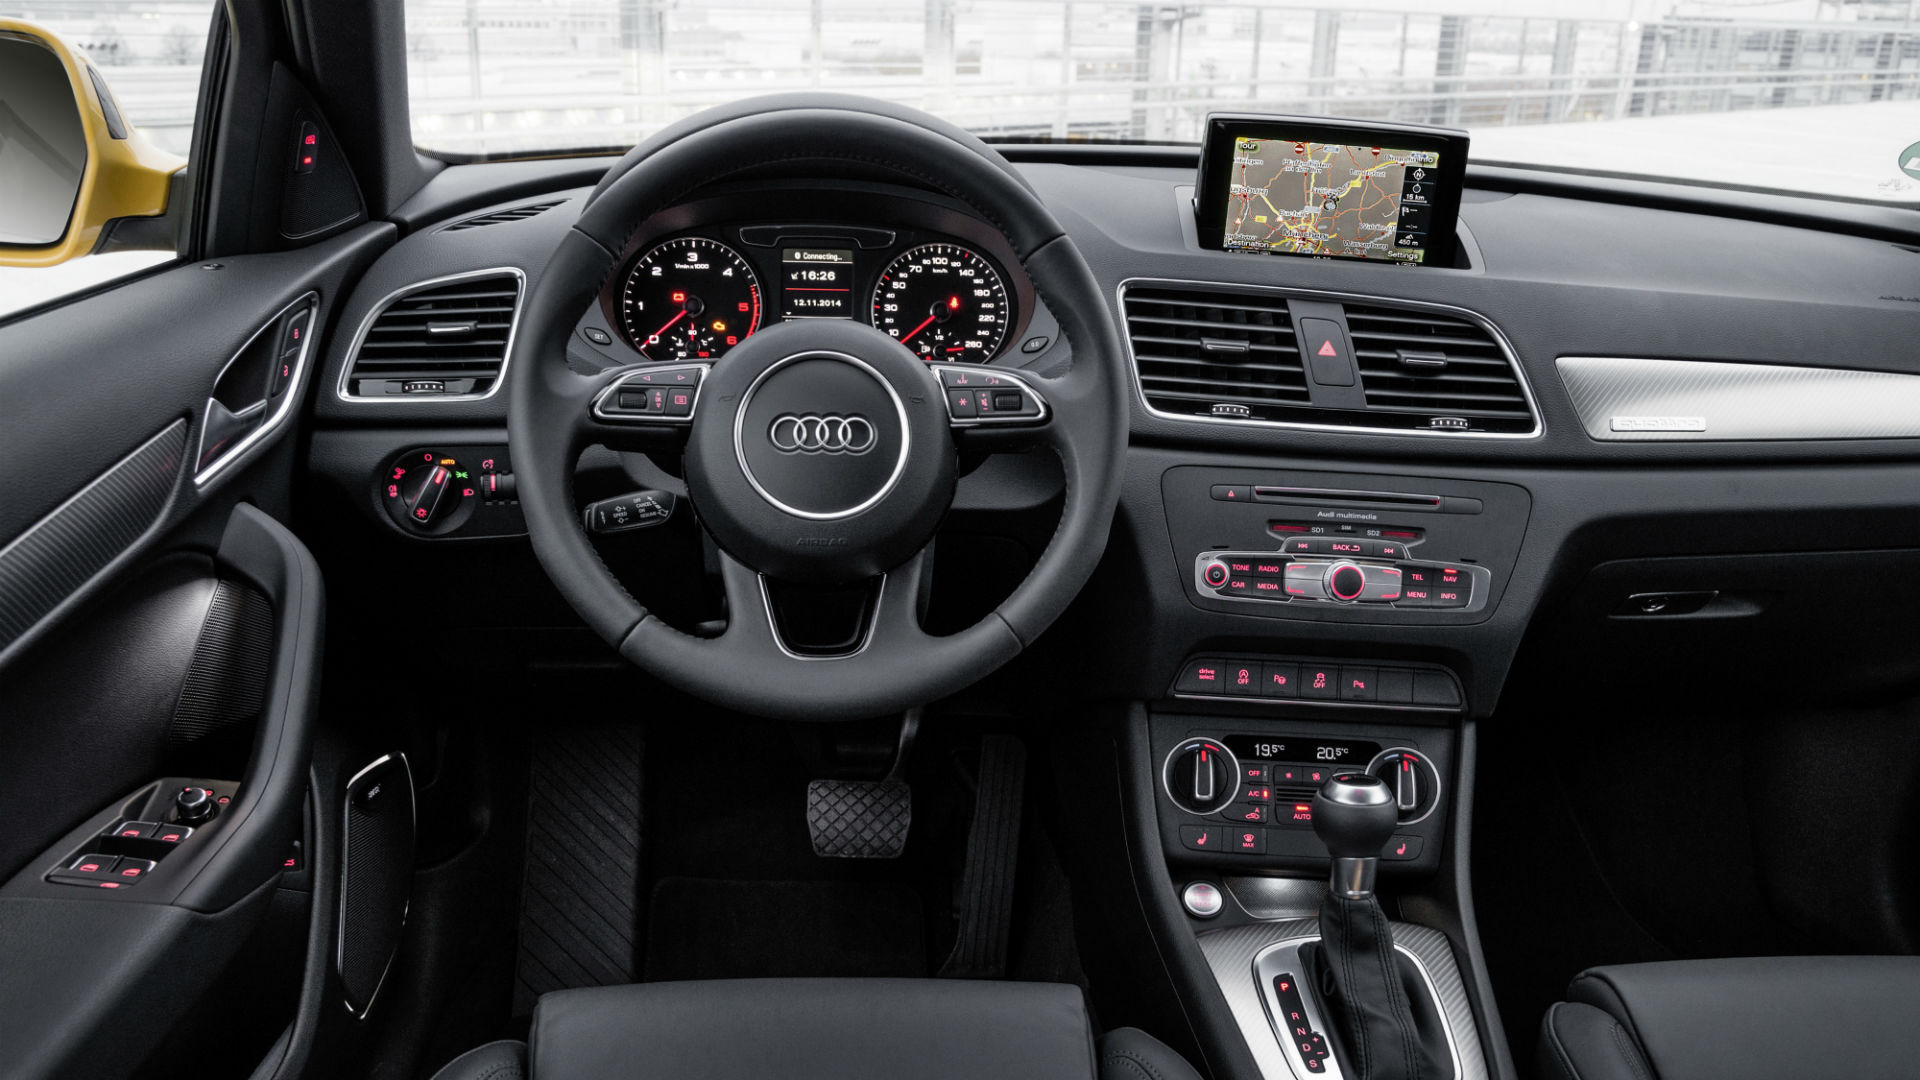 would you like more information about the all new 2018 audi q3 and all the ways that it outshines the 2018 mercedes gla 250 check out our website or come